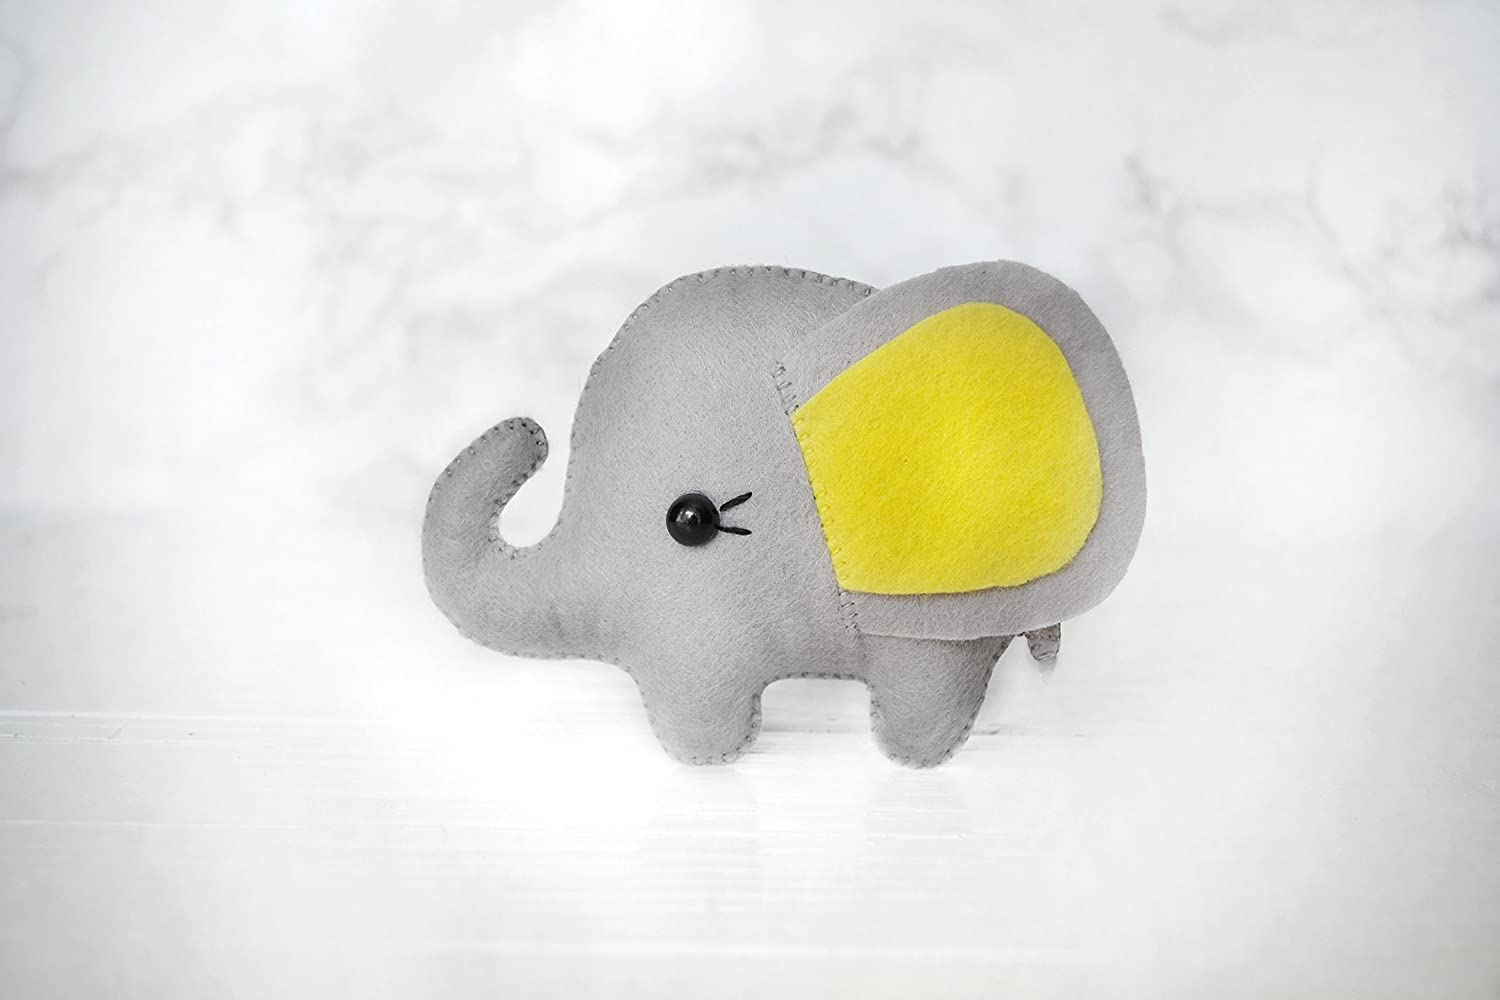 Elephant Baby Toy Decoration Stuffed Elephant Felt Elephant Soft Plush Elephant Toy Elephant Gift For Her Elephant Gift Stuffed Animals Zoo